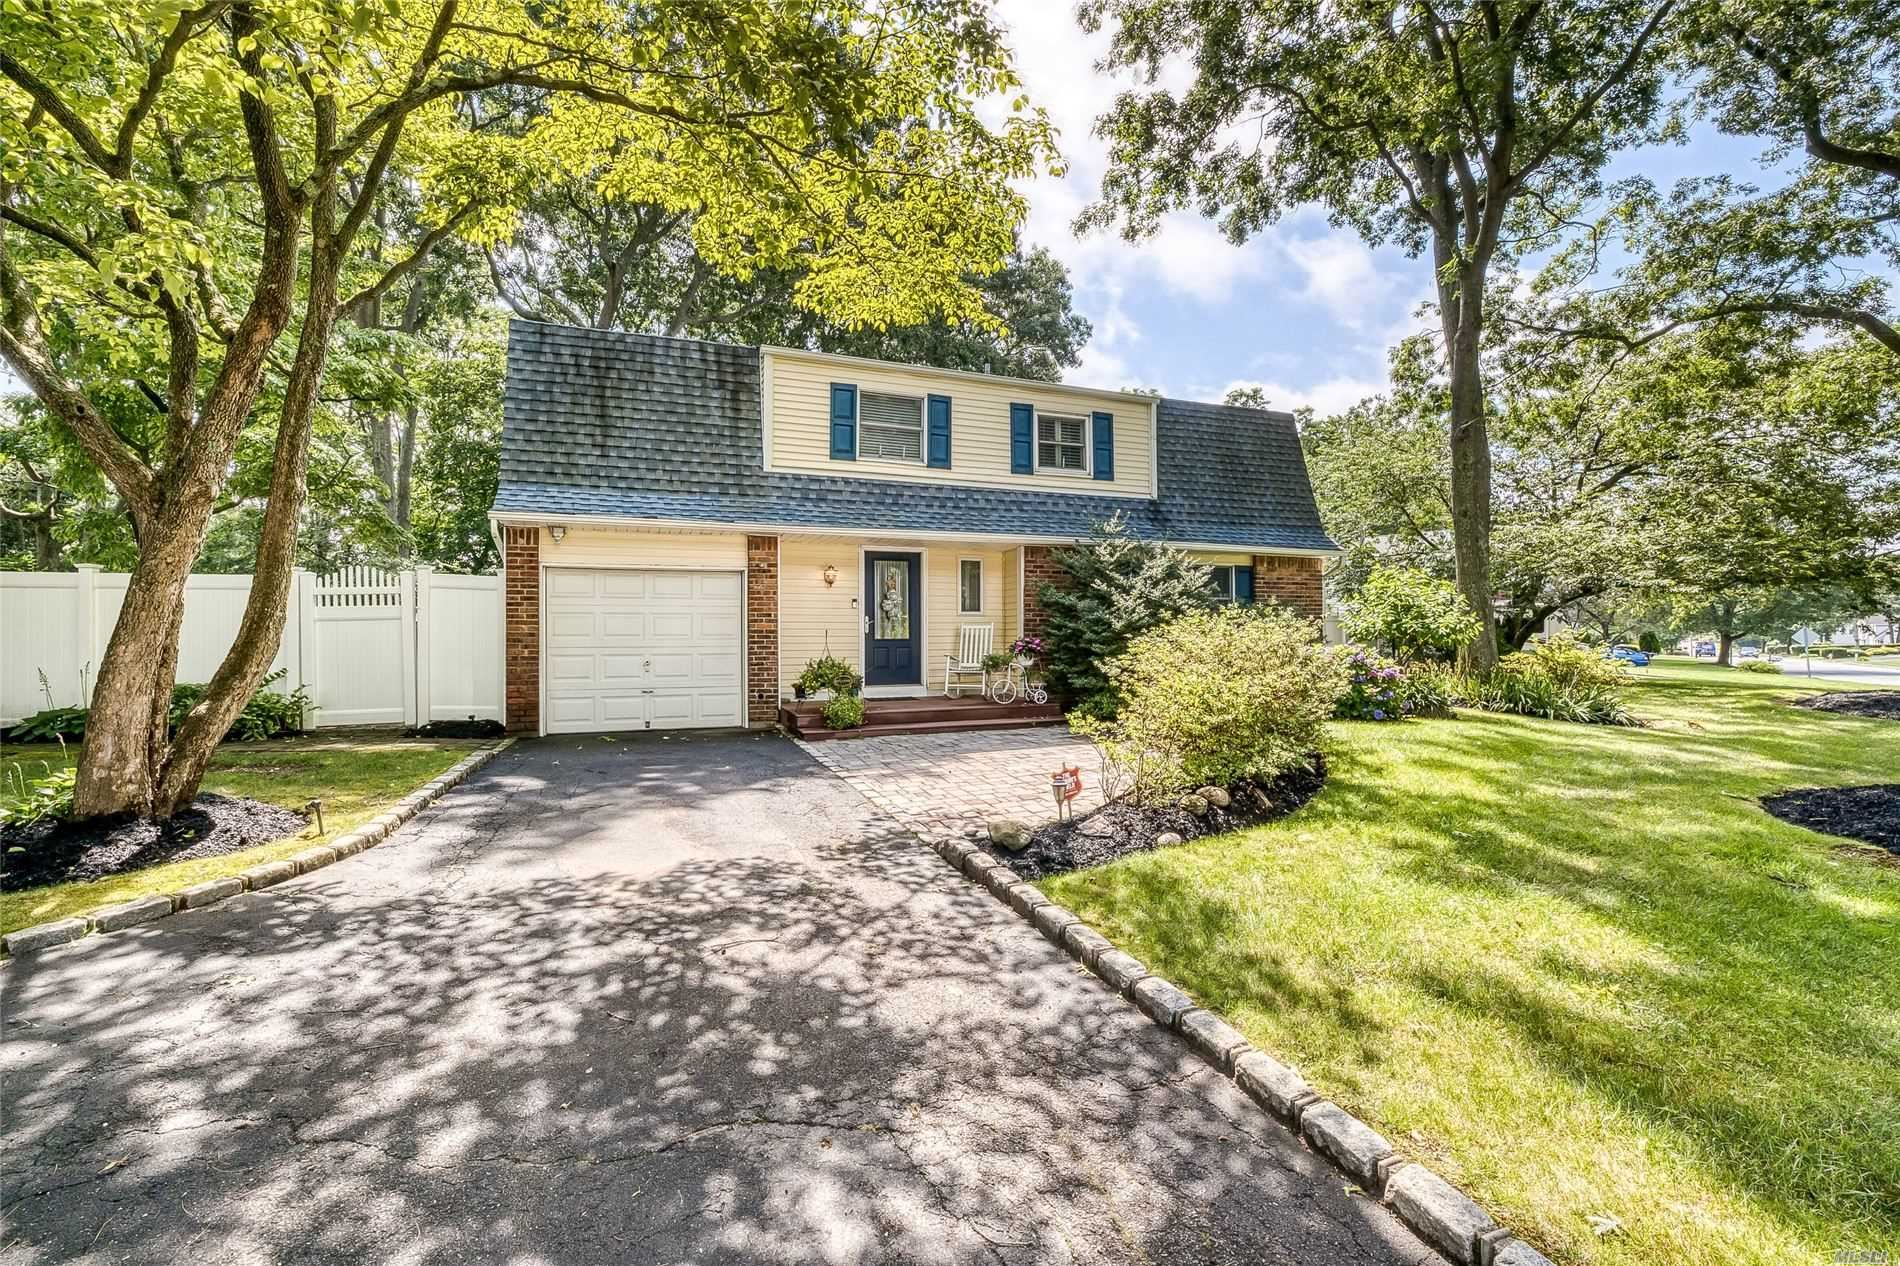 1 Osborne Avenue, Mount Sinai, NY 11766 - MLS#: 3233081